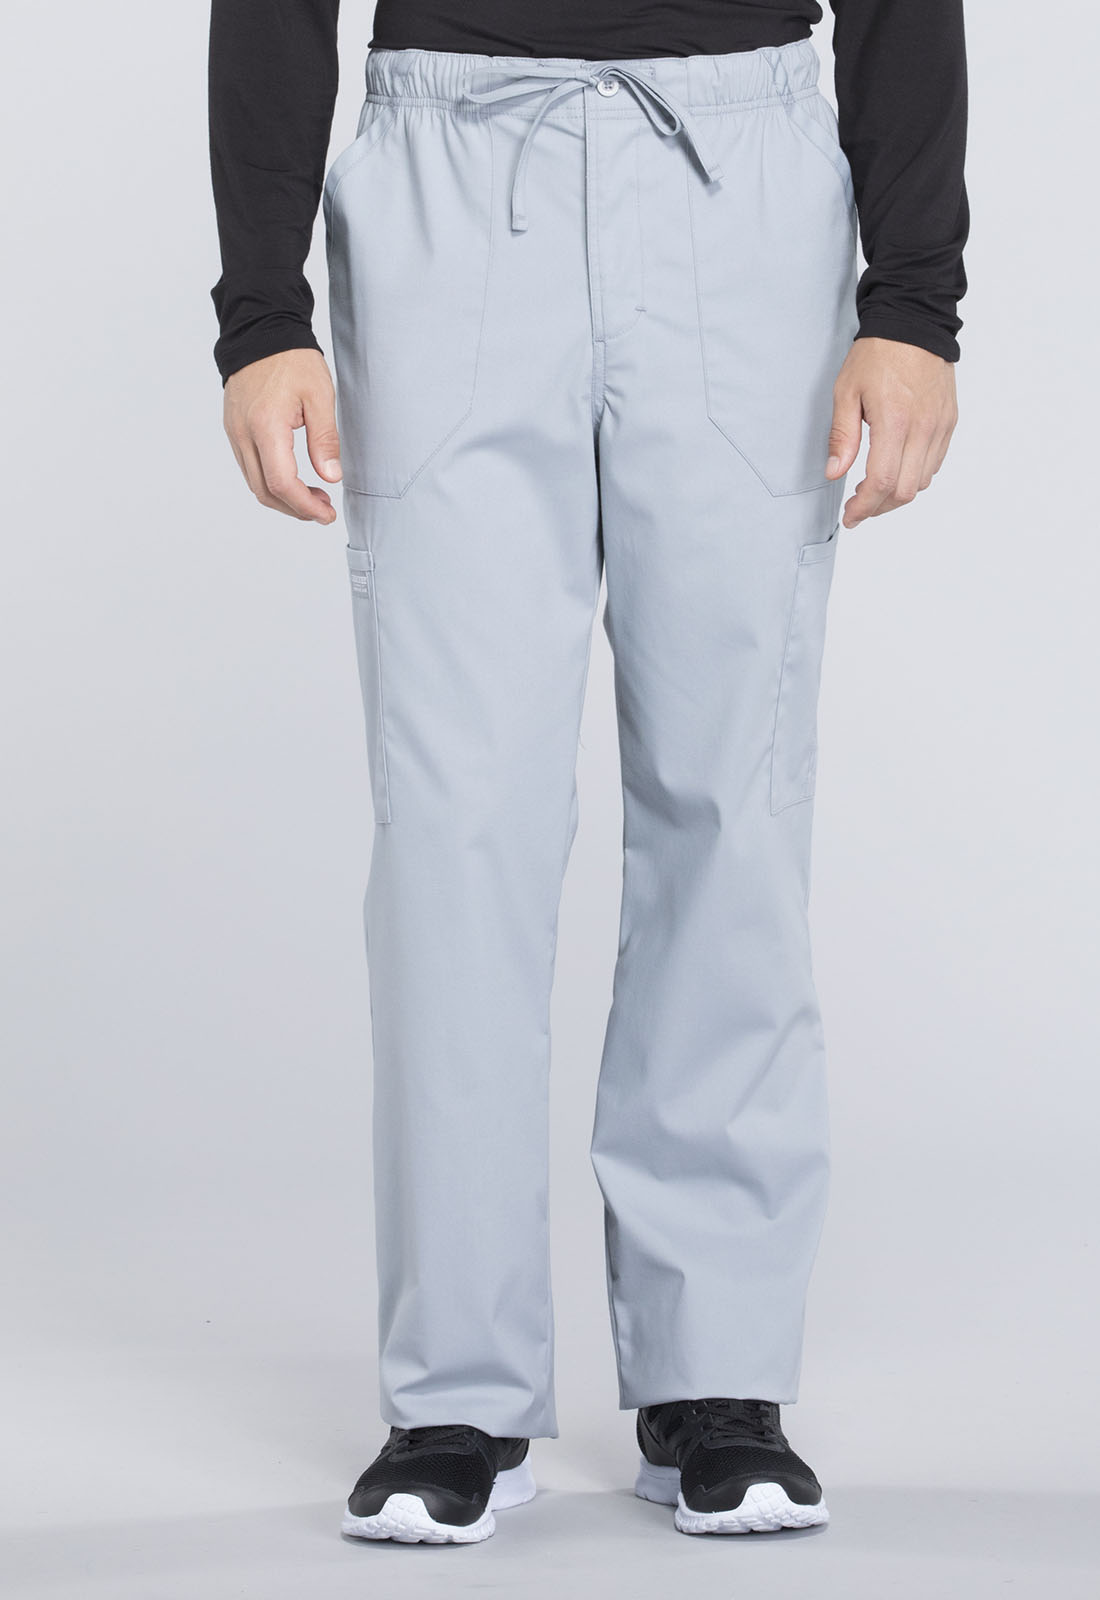 Men's Tapered Leg Drawstring Cargo Pant